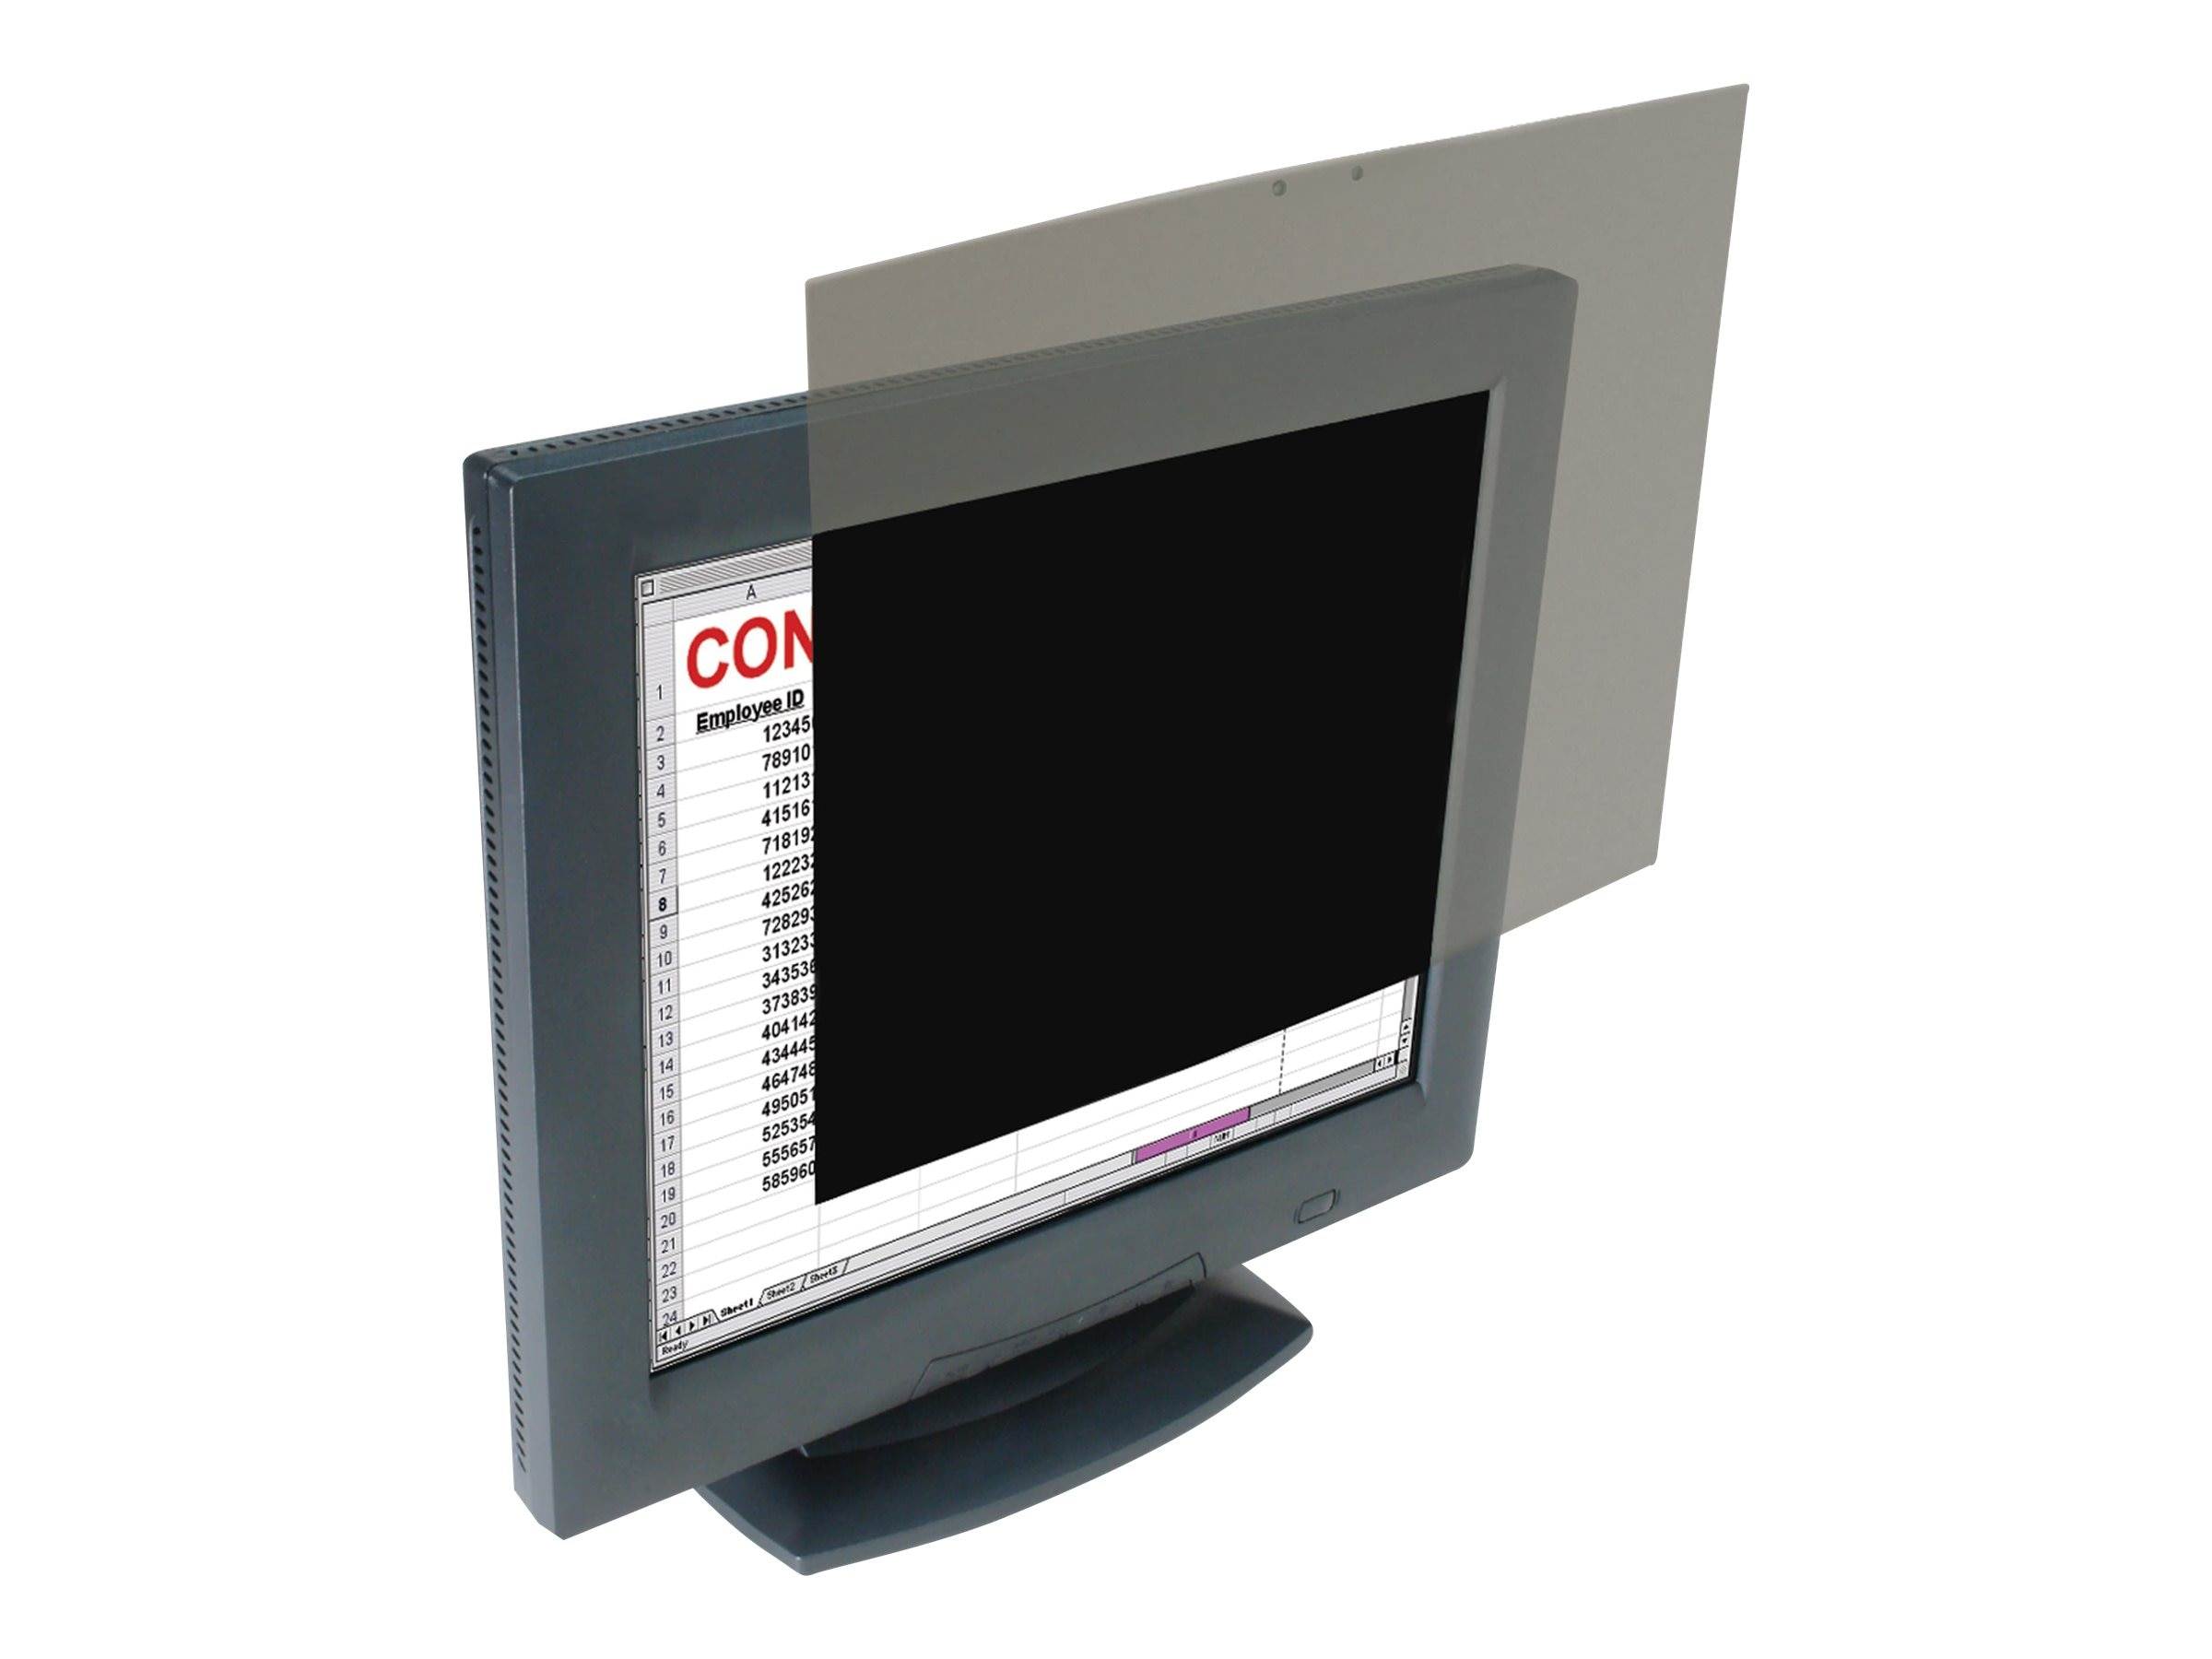 Kensington 19 Privacy Filter for LCD Display, K55781US, 12756391, Glare Filters & Privacy Screens